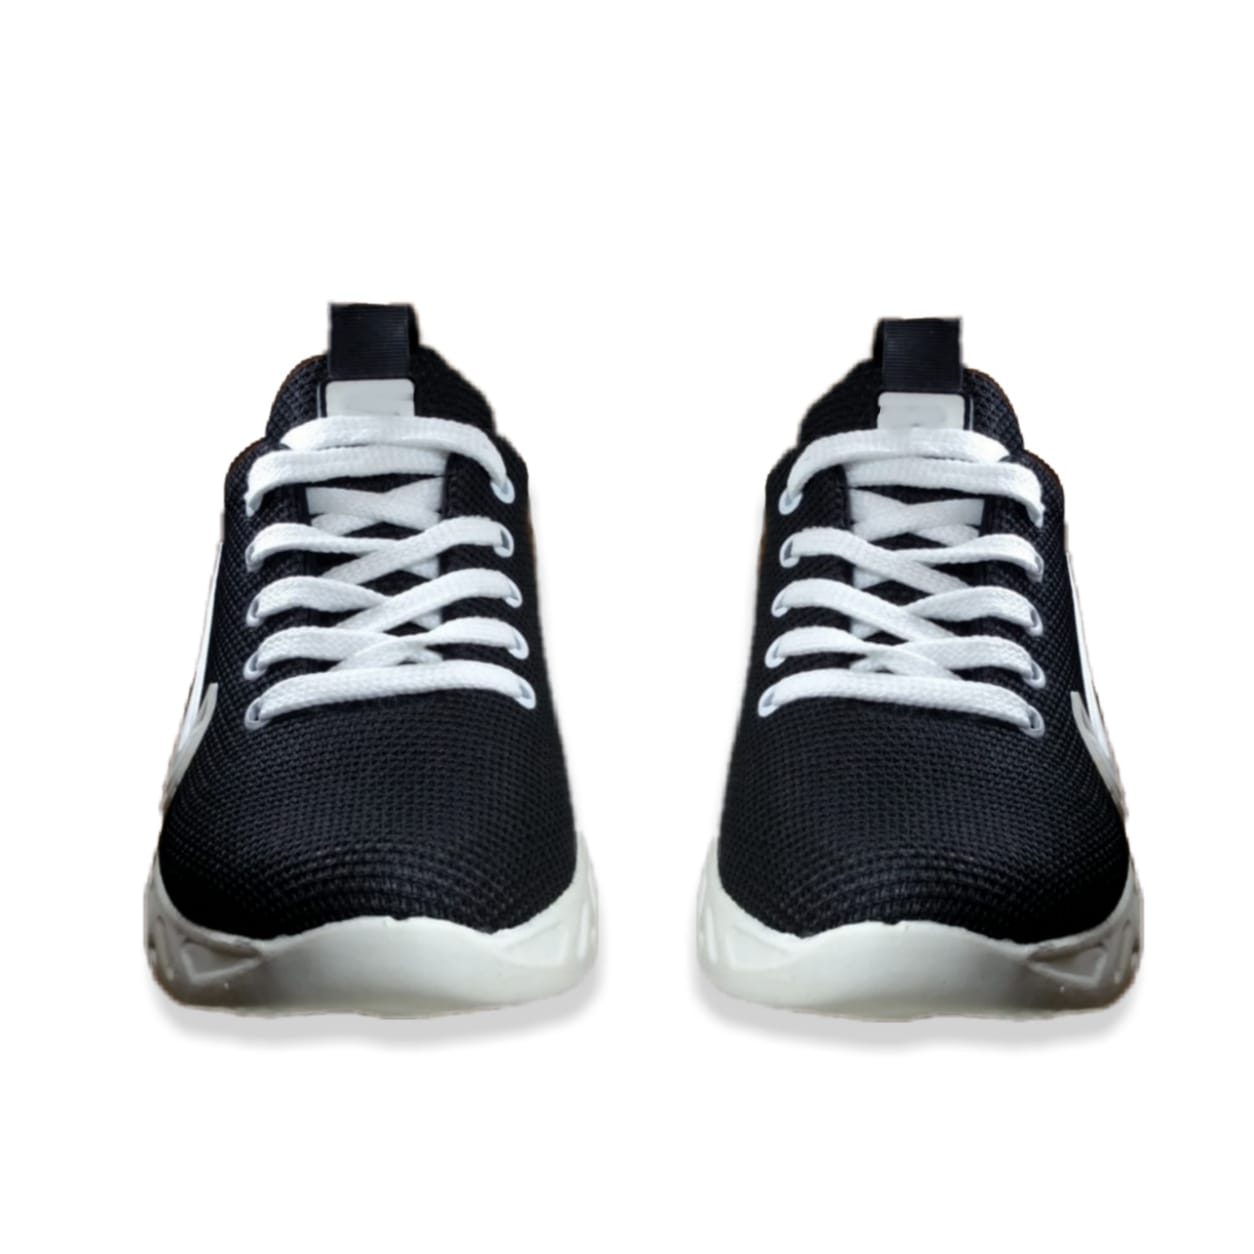 (MK) - Black , Blue & Red Synthetic Material Sneakers 005